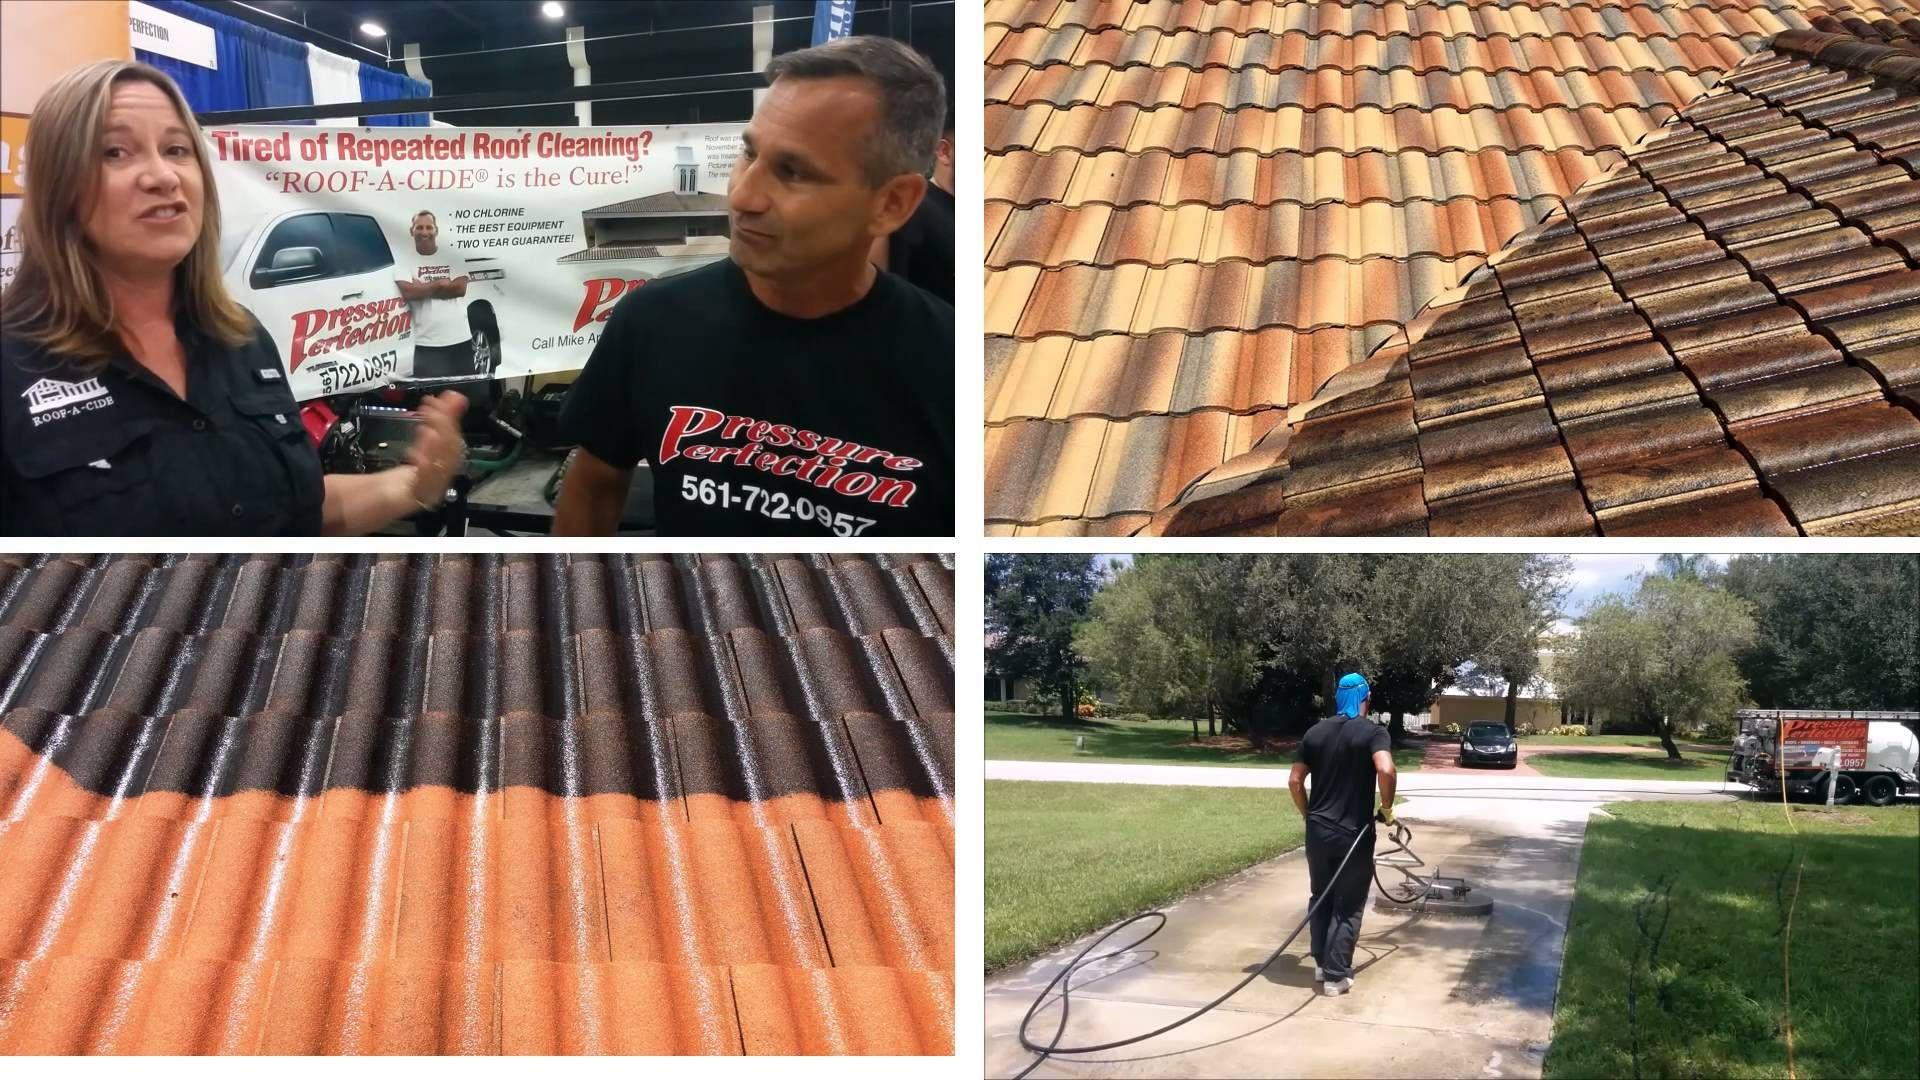 Pressure Perfection An Authorized Roof A Cide Applicator Serving Palm Beach Broward Counties Recently Participated In Trade Show Roof Cleaning